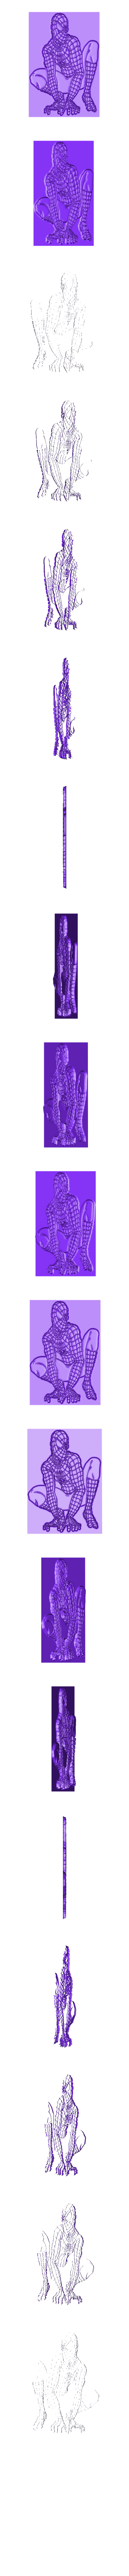 spiderman1.stl Download free STL file Spiderman • 3D printer template, Account-Closed